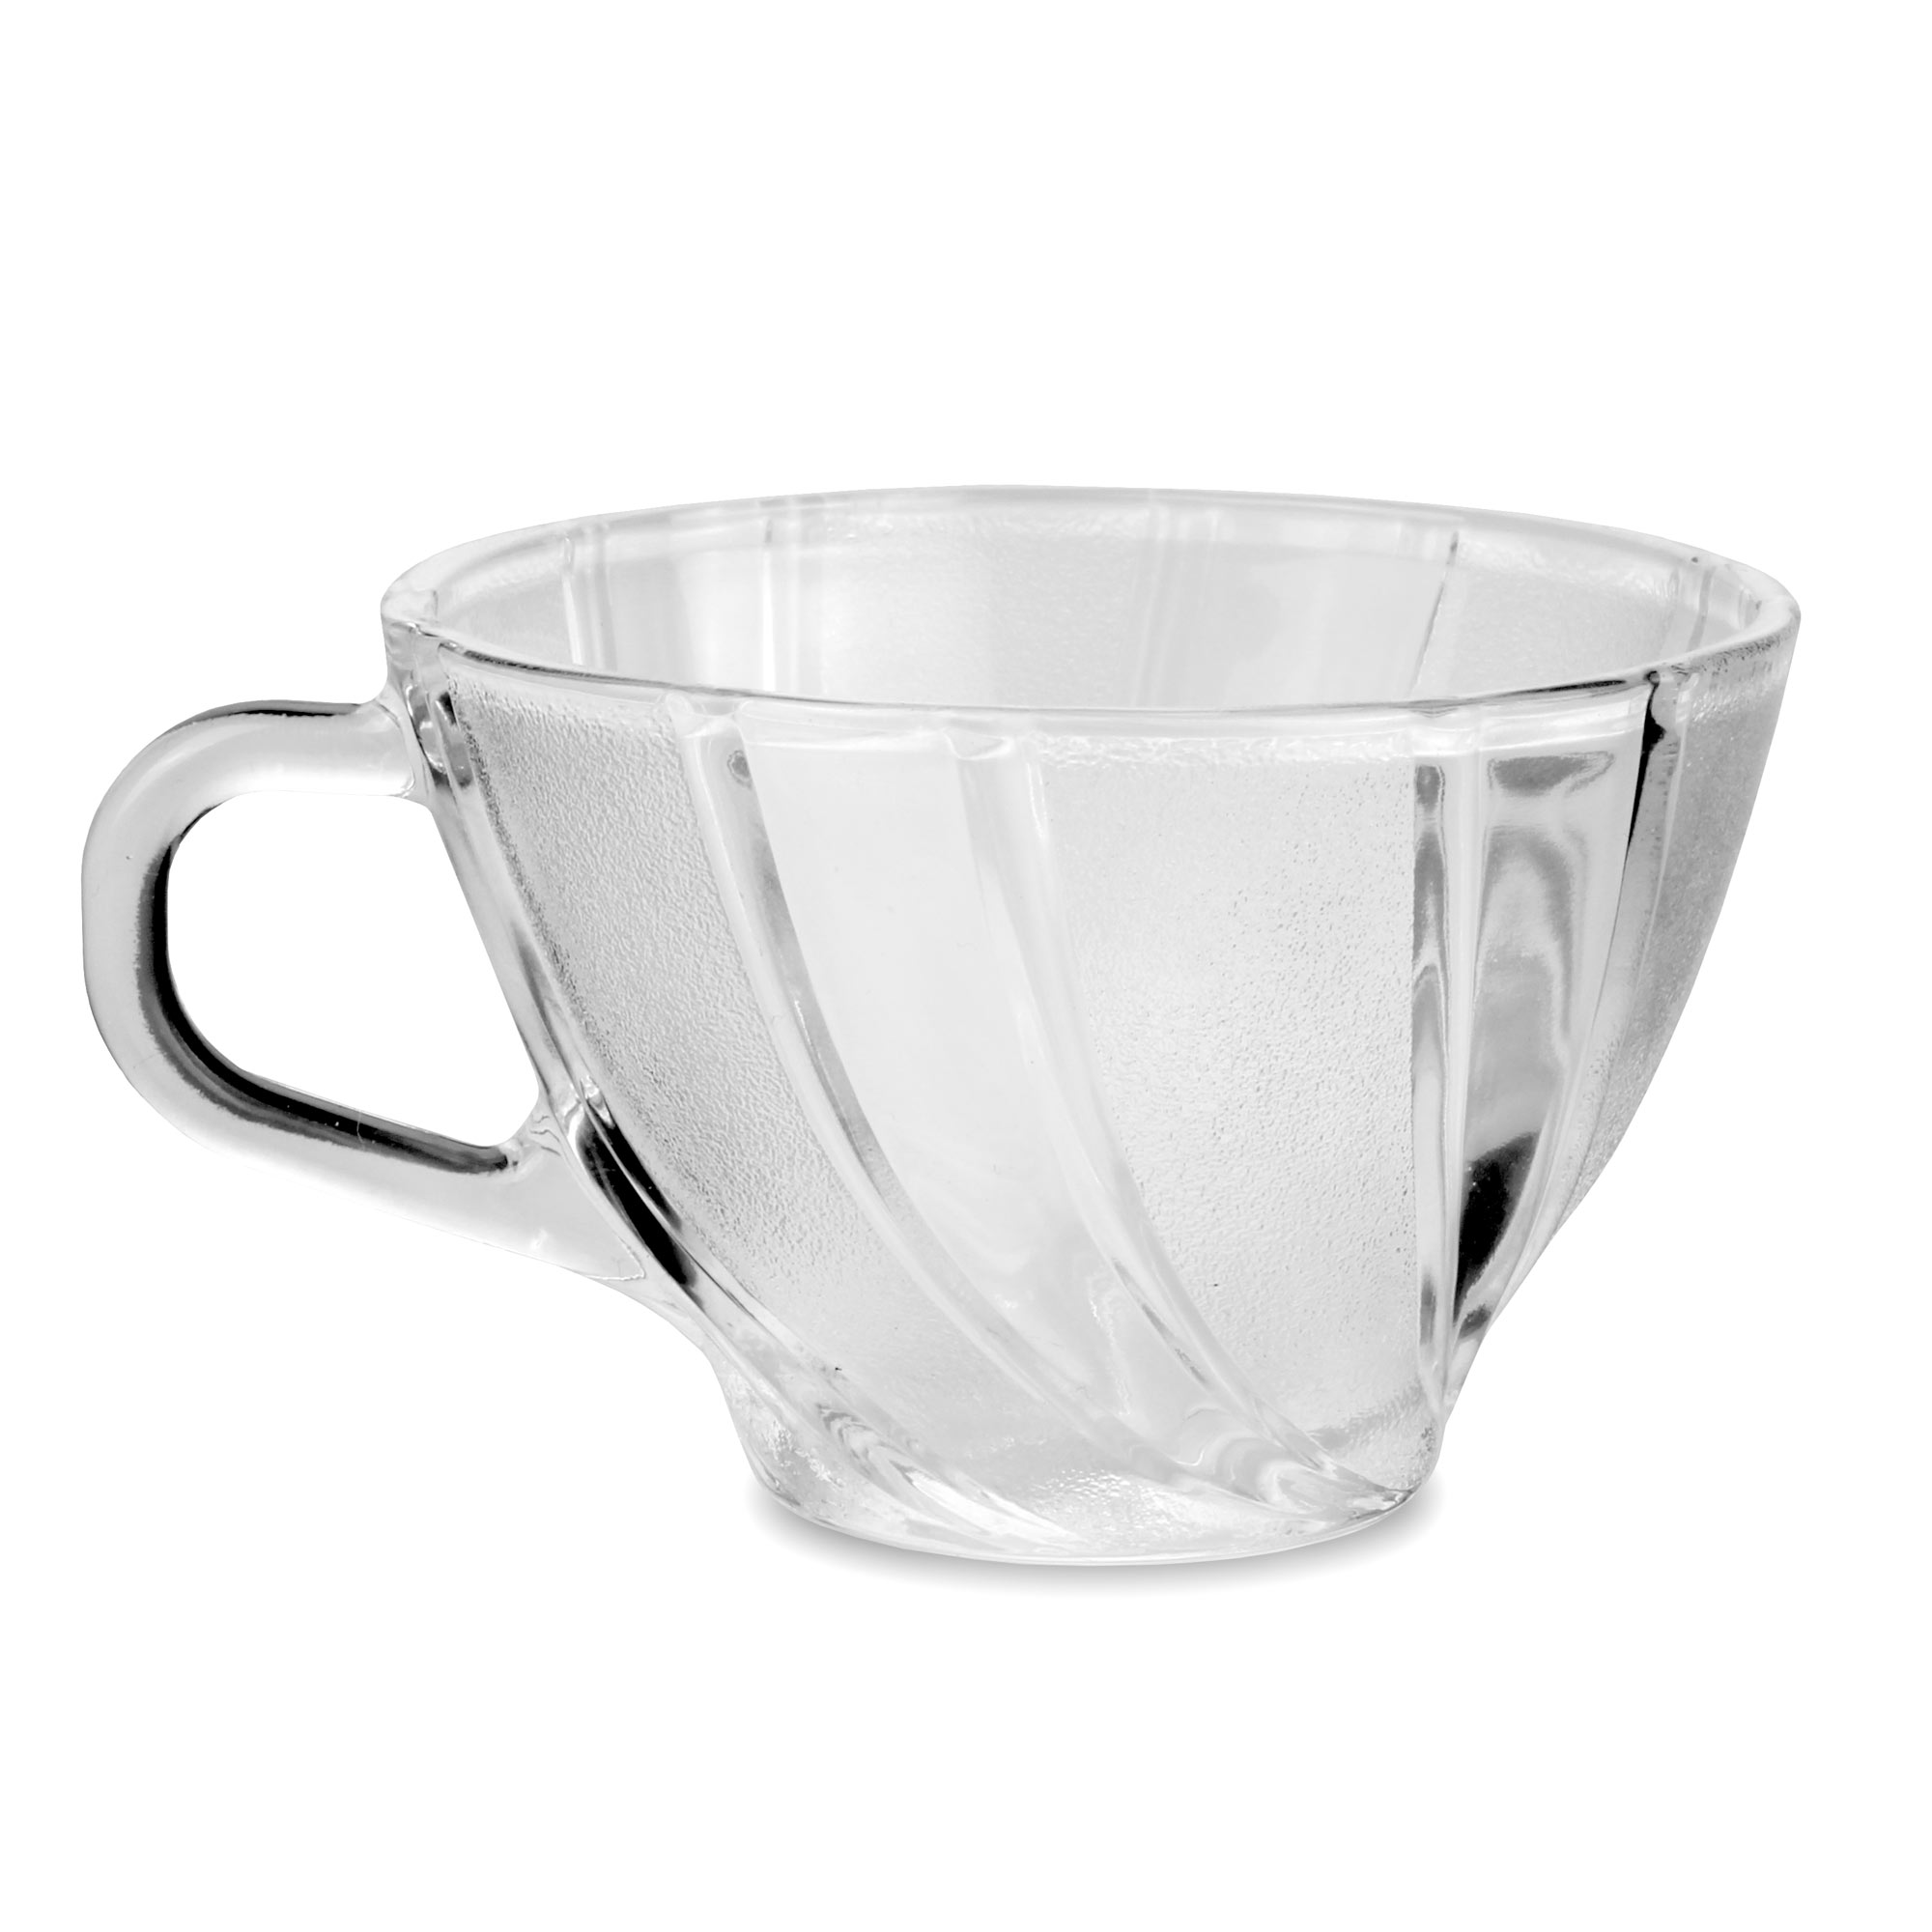 Large Glass Punch Bowl Set With 12 Cups At Drinkstuff Com